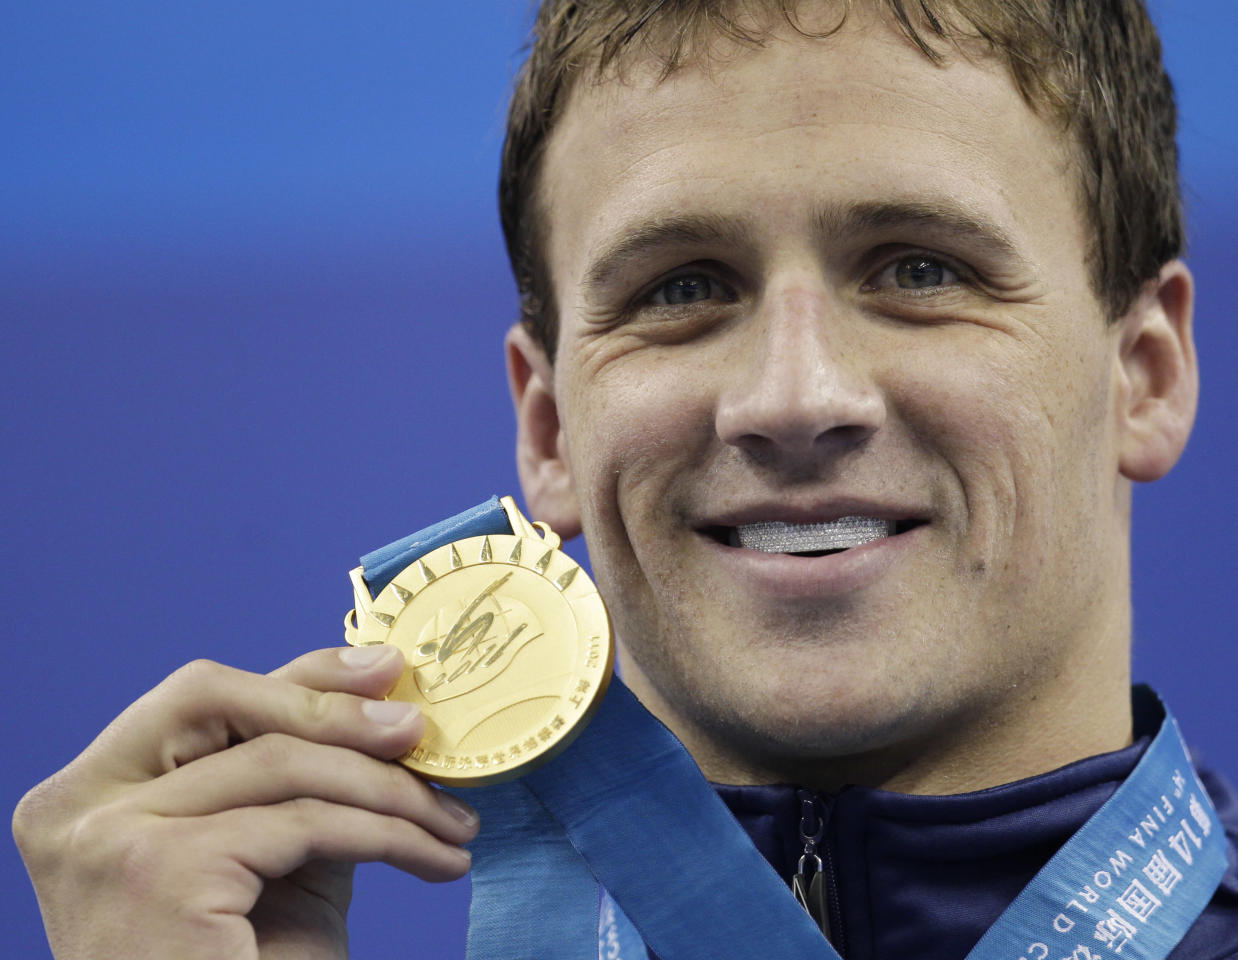 U.S. Ryan Lochte shows the gold medal he won in the men's 200m Backstroke final at the FINA Swimming World Championships in Shanghai, China, Friday, July 29, 2011. (AP Photo/Michael Sohn)